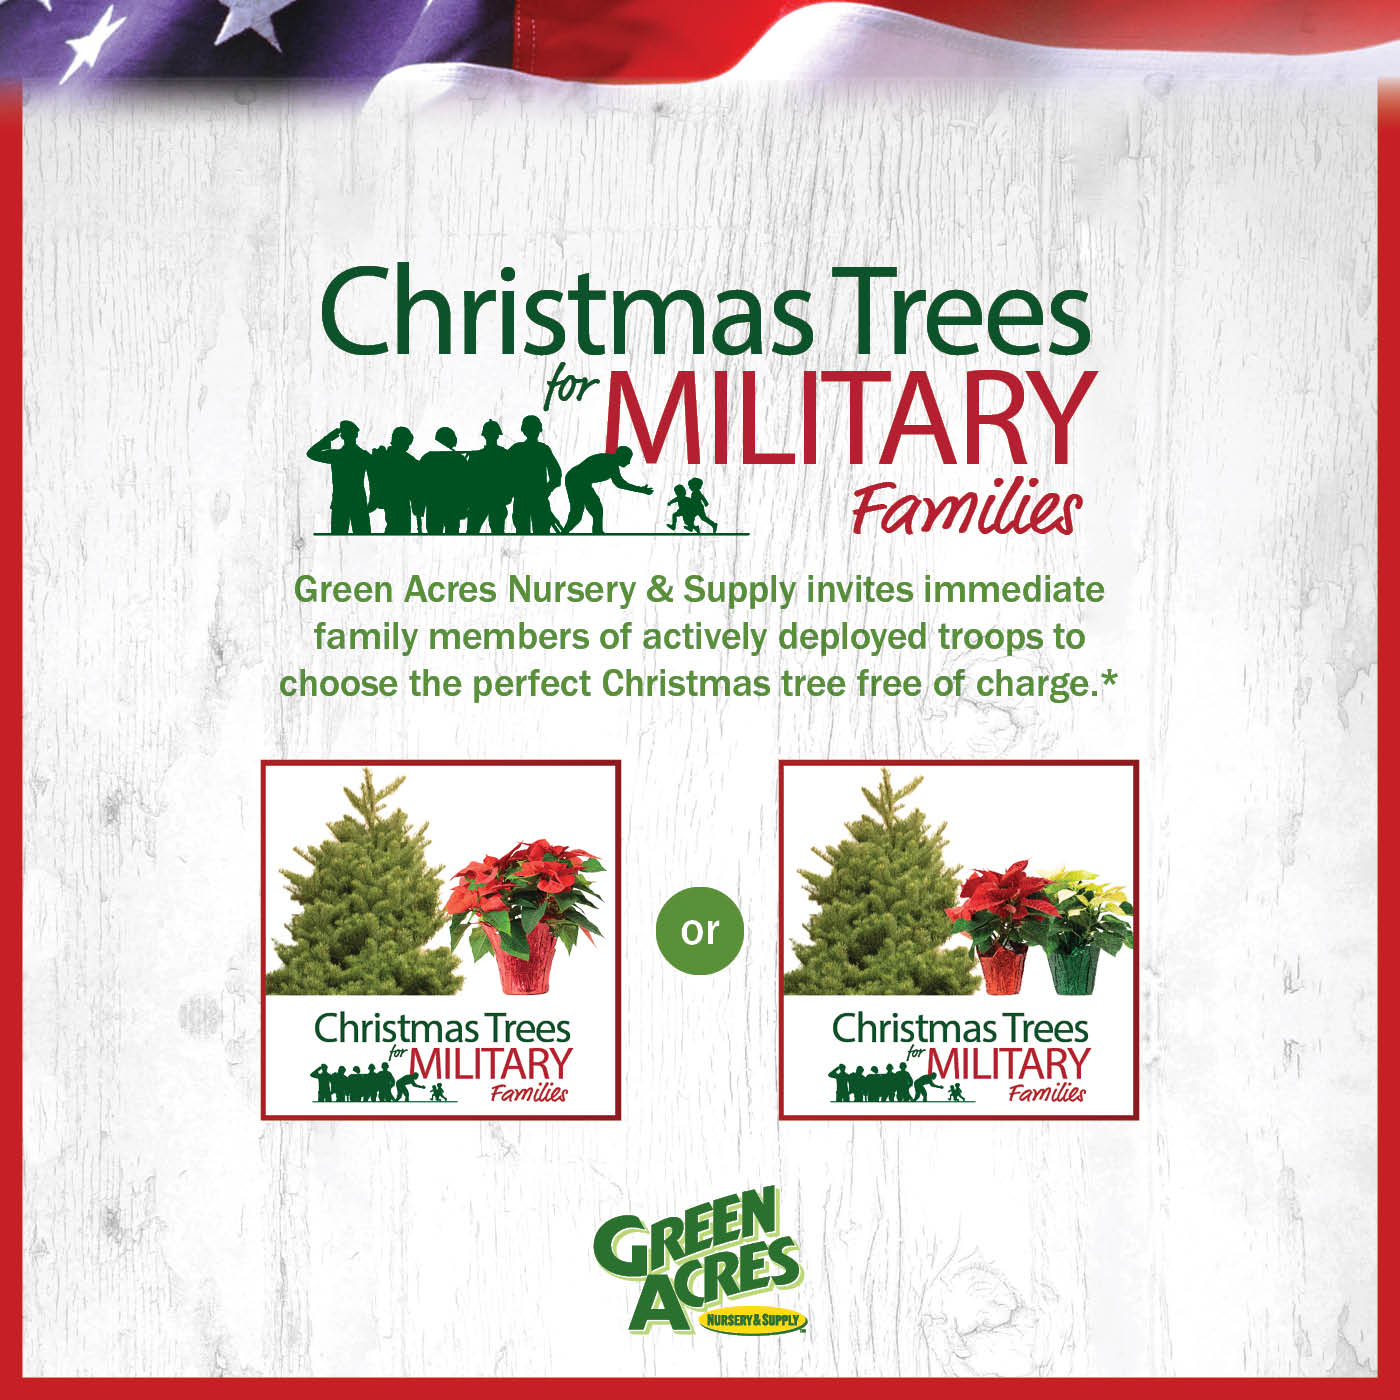 Christmas Trees for Military Families